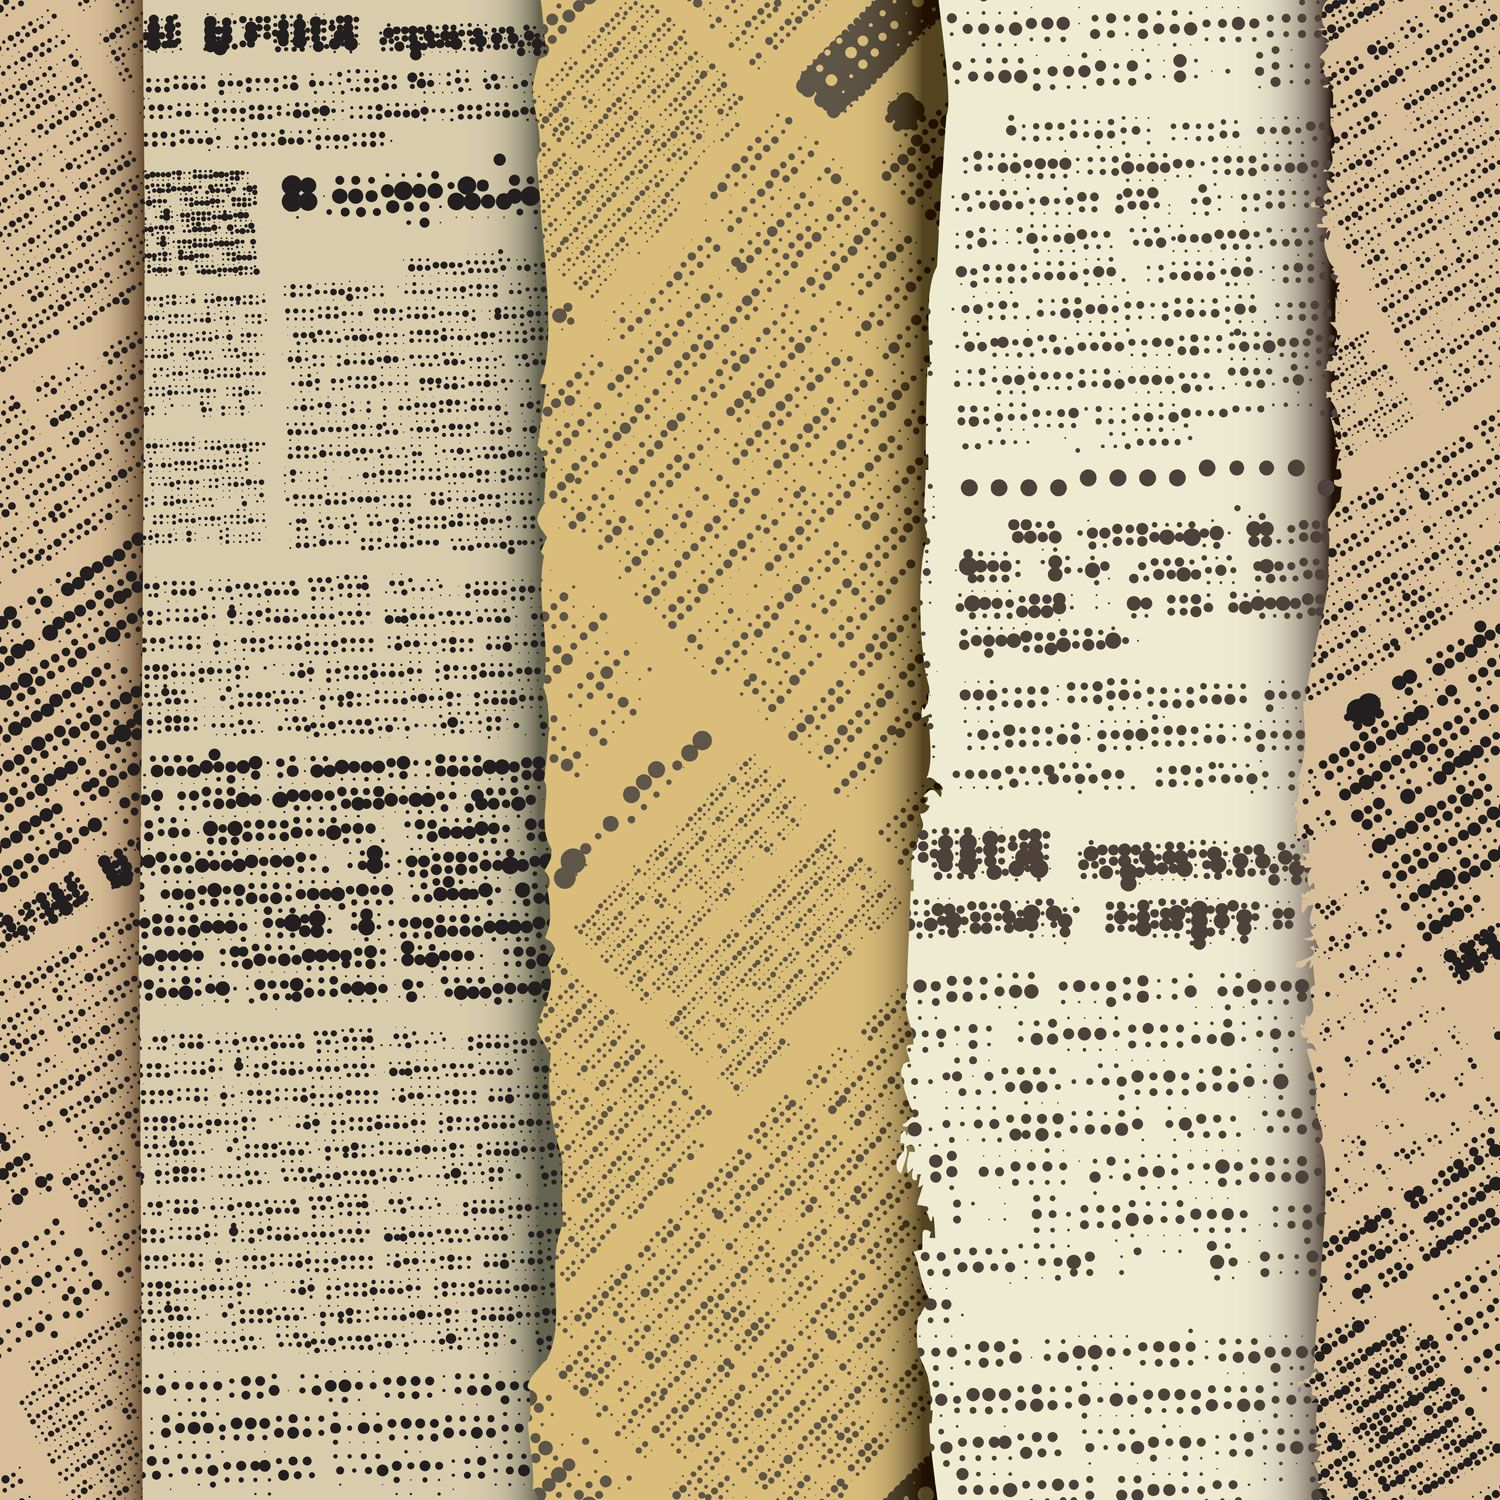 Old Newspaper Texture Google Search Newspaper Wallpaper